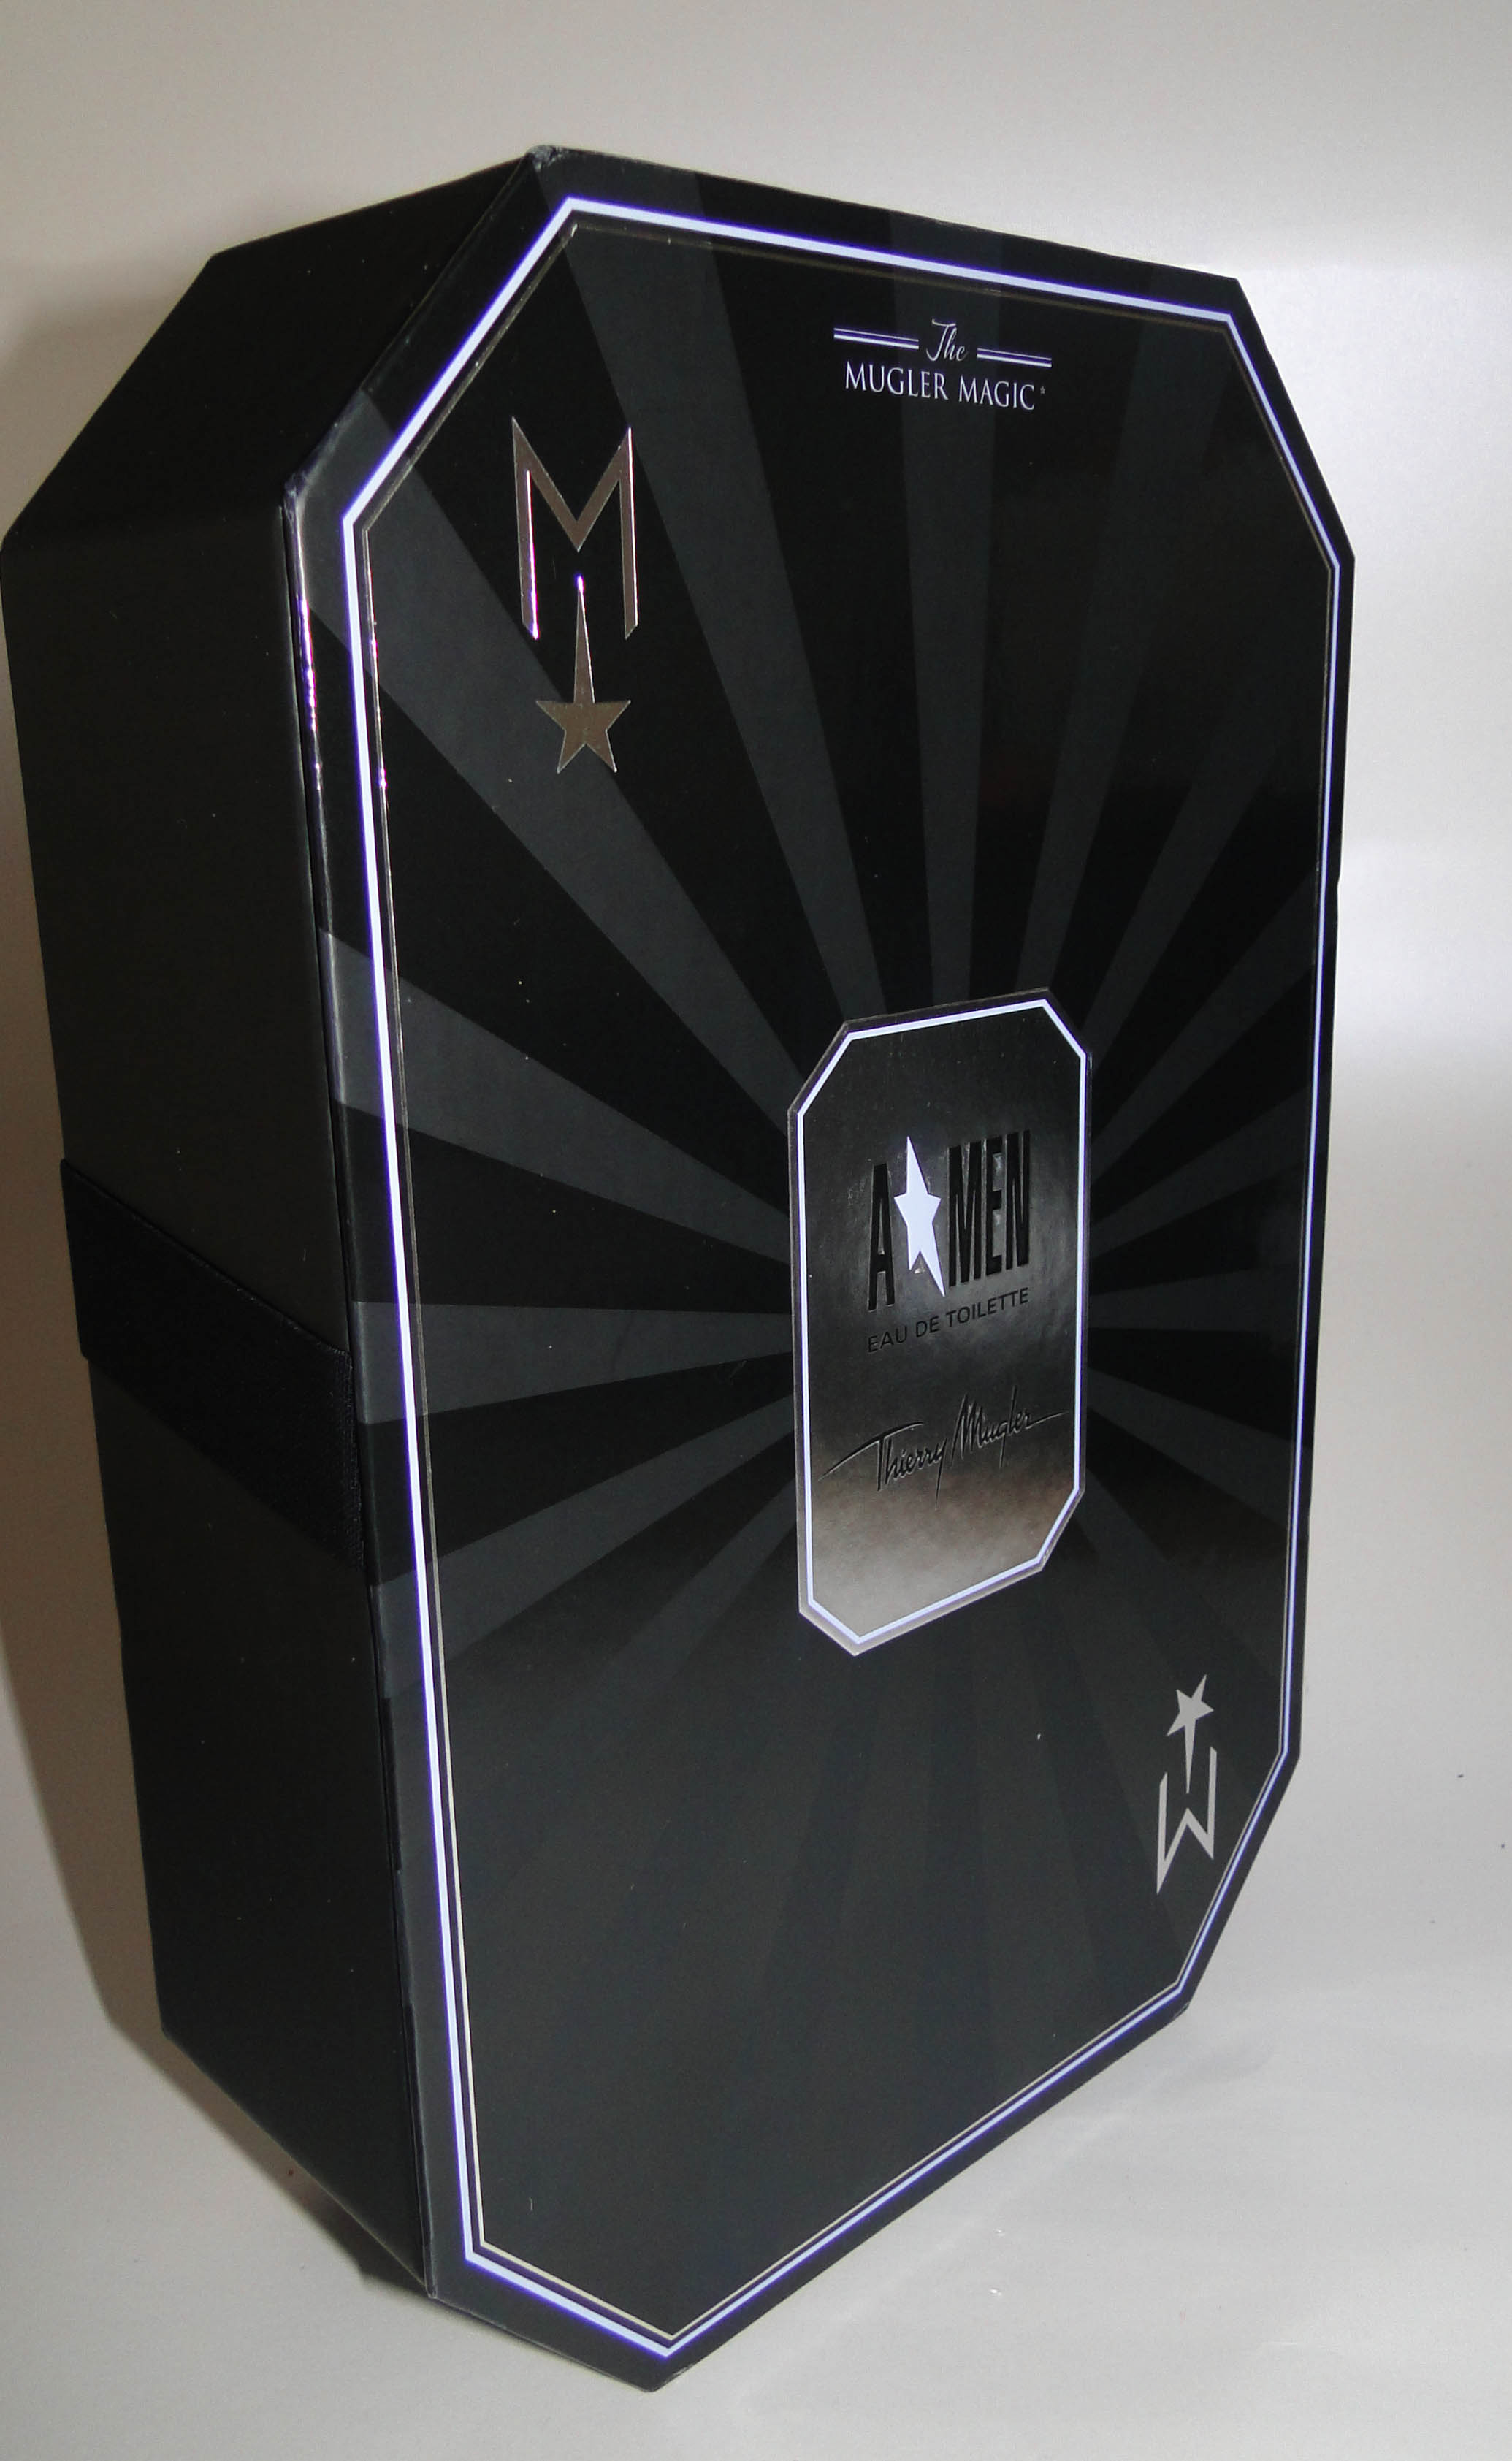 Thierry Mugler A*Men Eau de Toilette Gift Set